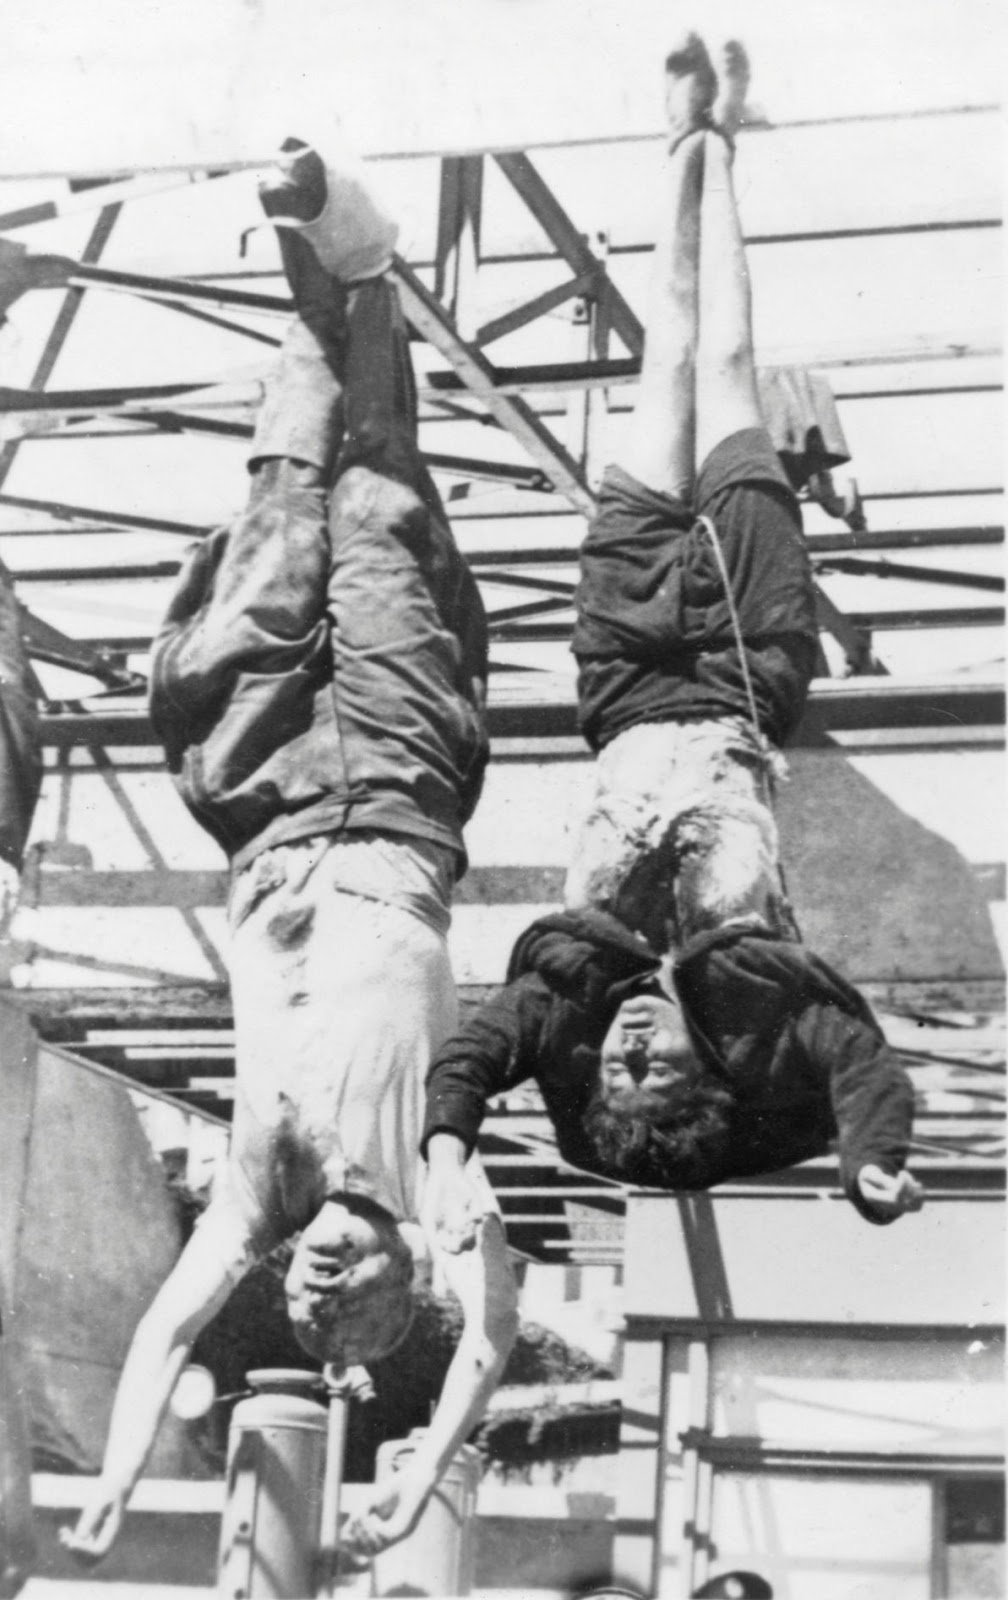 The bodies of Benito Mussolini and Clara Petacci hanging at the Esso gas station in Piazzale Loreto in Milan, Italy